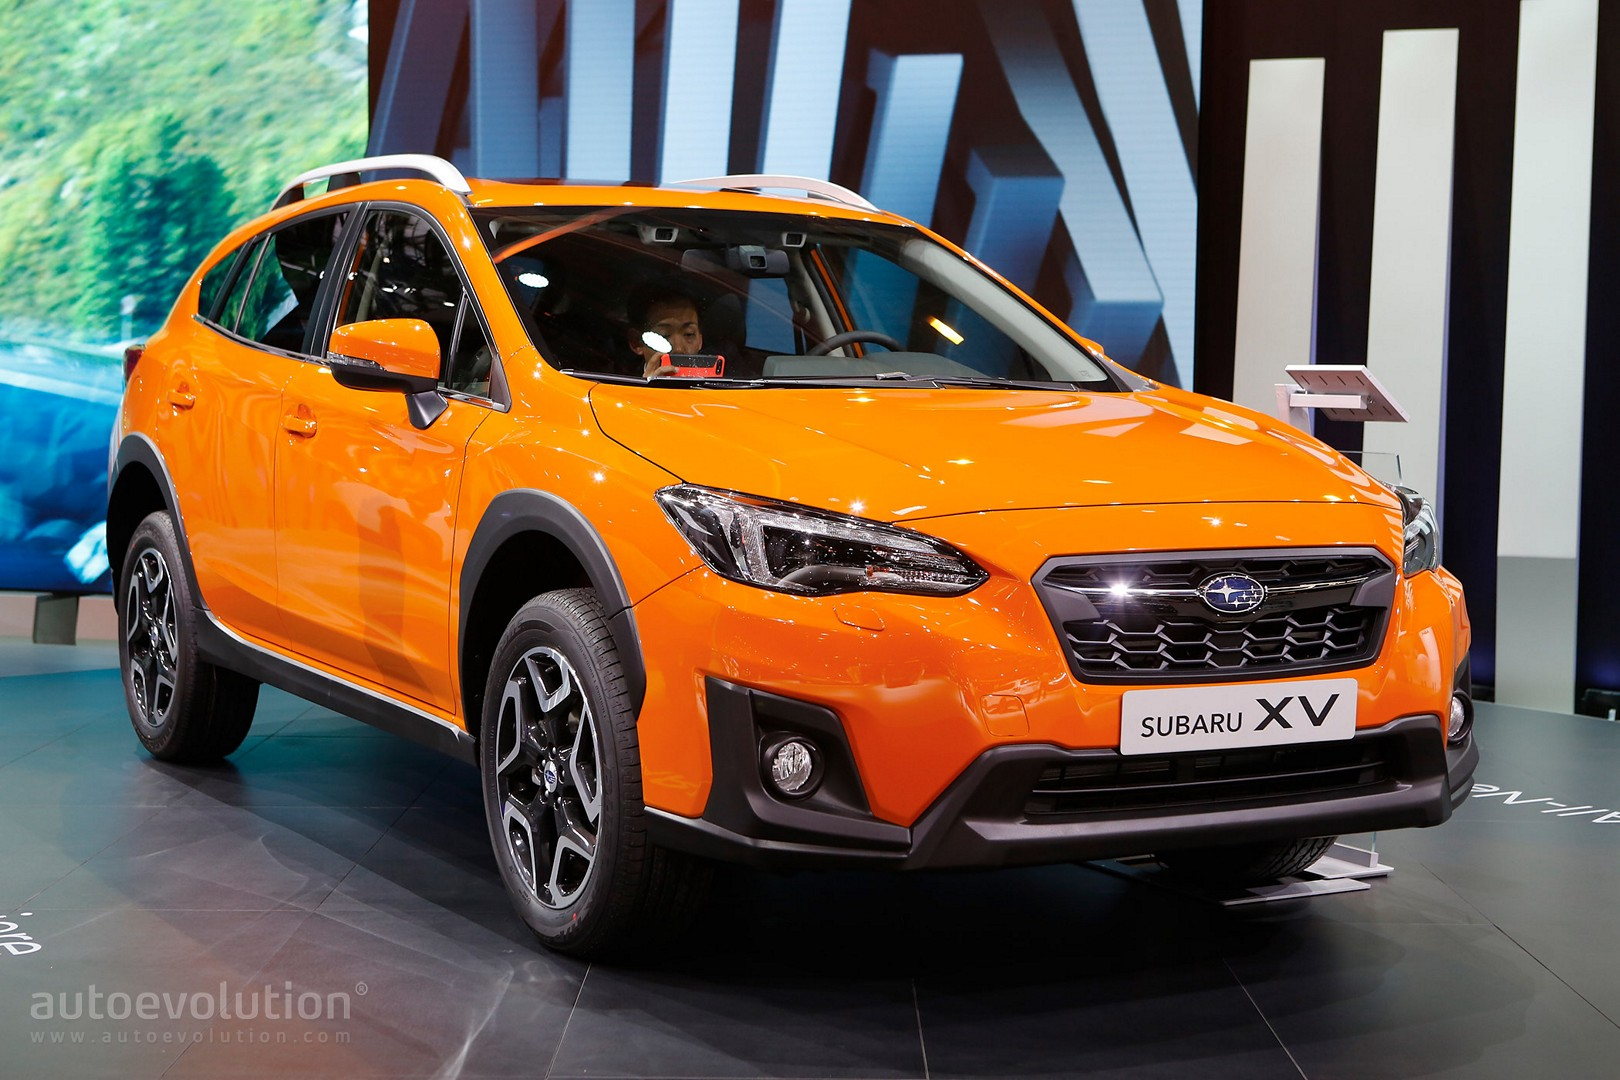 2018 Subaru Xv Debuts In Geneva As Impreza S Rugged Brother